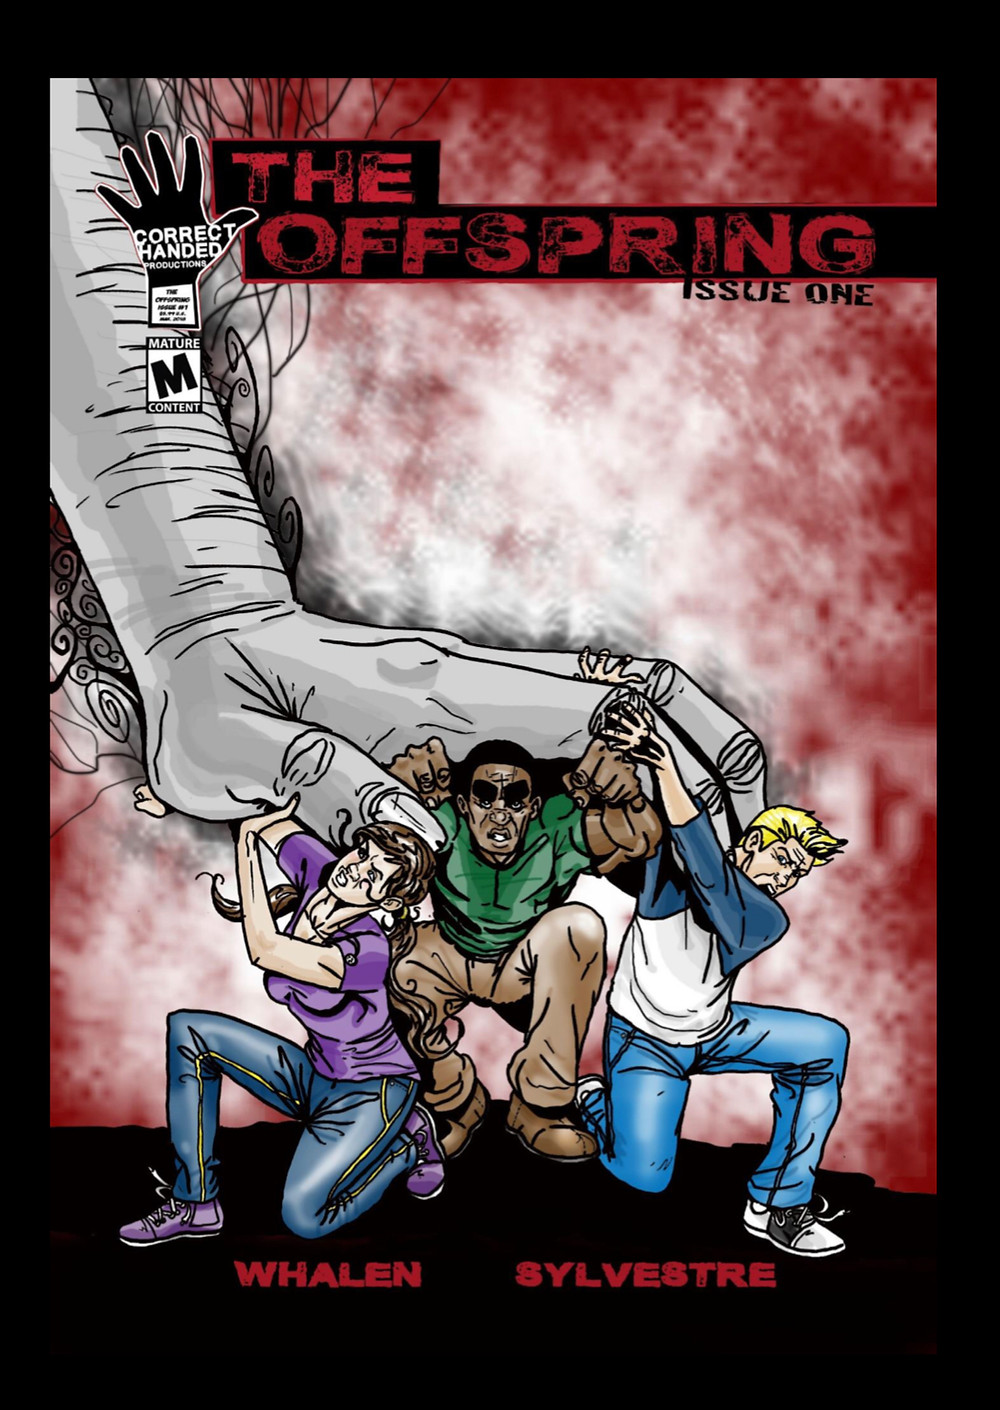 The Offspring, issue #1, cover, Correct Handed Productions, Whalen/Sylvestre